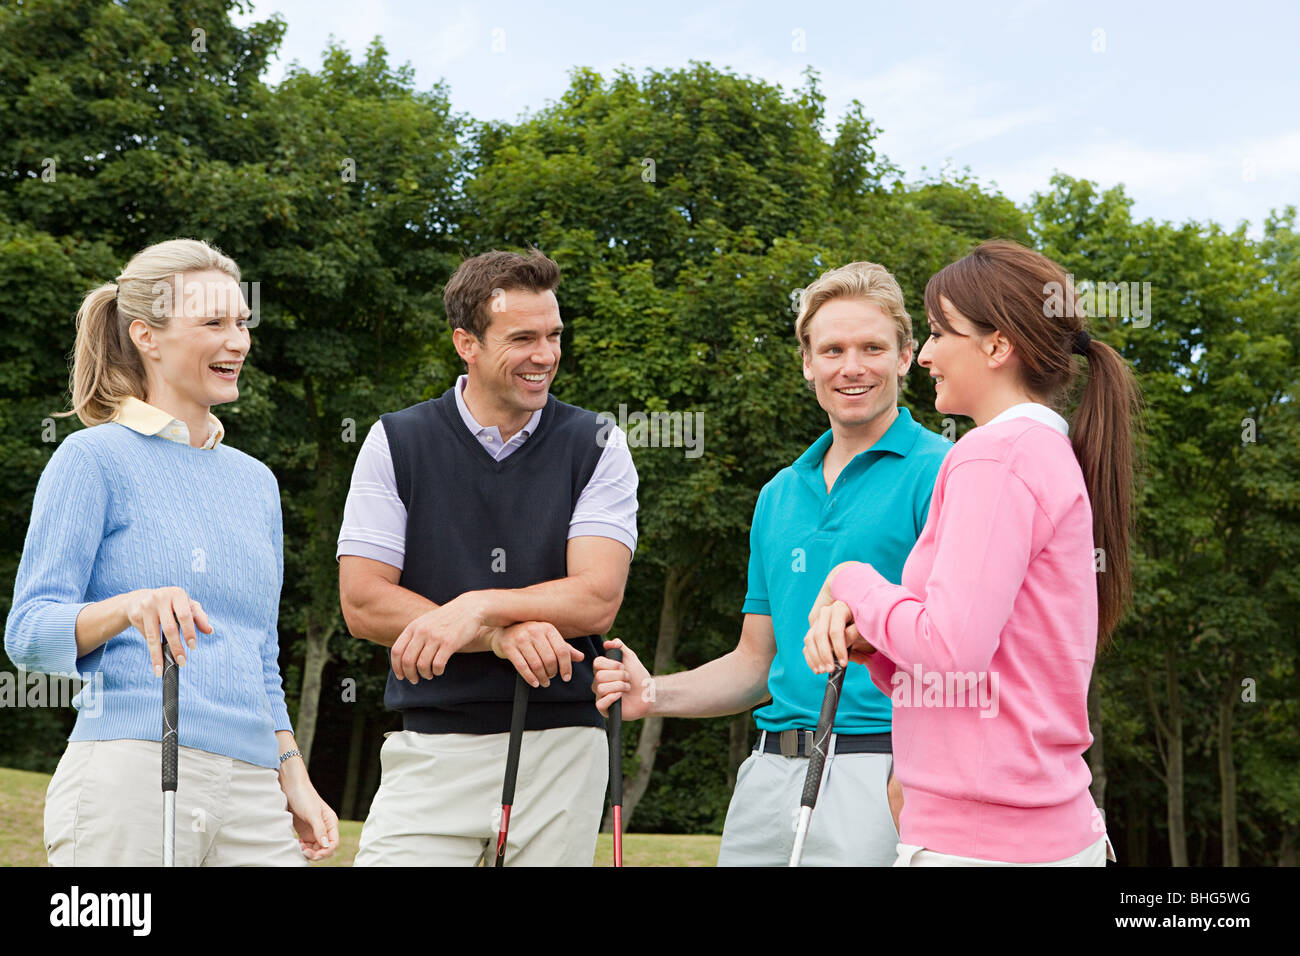 Four golfing friends - Stock Image